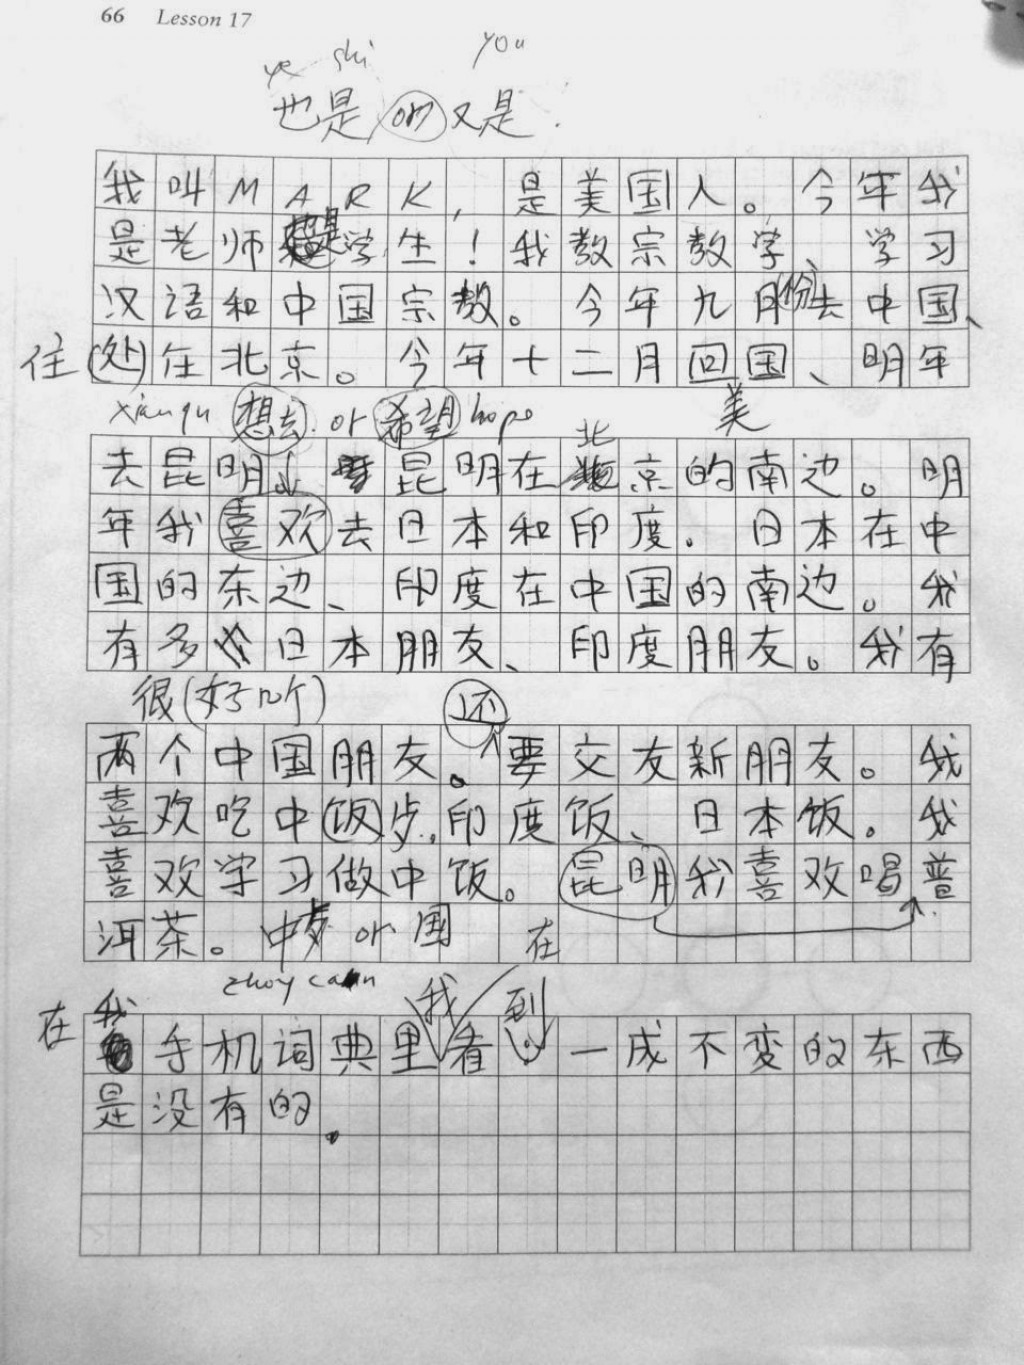 015 Essay Example Chinese Amazing Art Topics Vce Formats Sheet Large